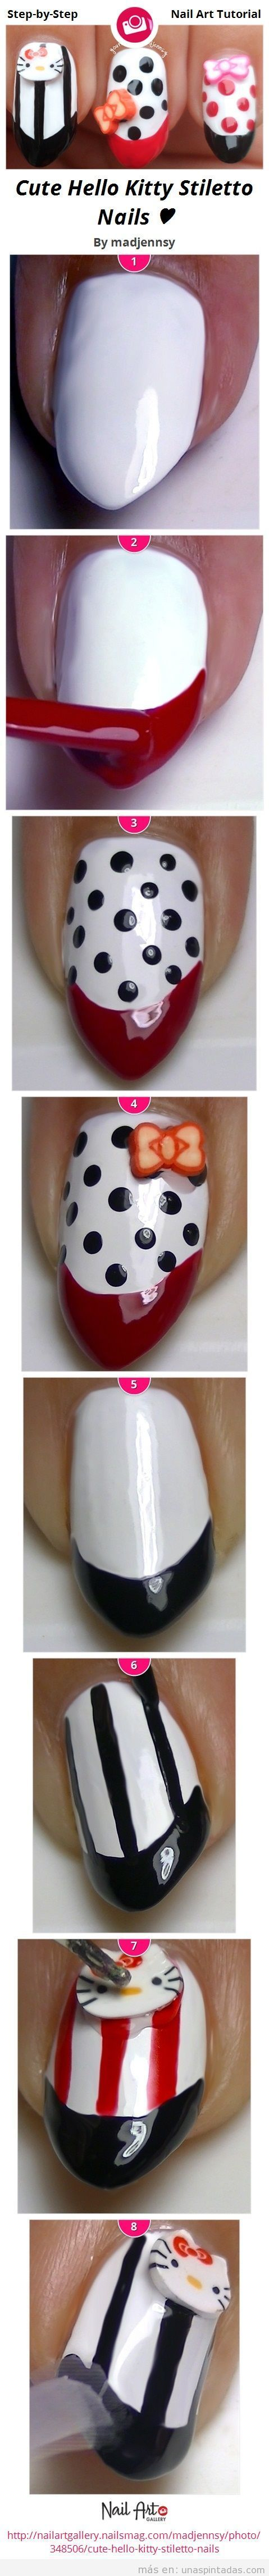 Tutorial paso a paso, Nail Art de rayas y lunares de Hello Kitty